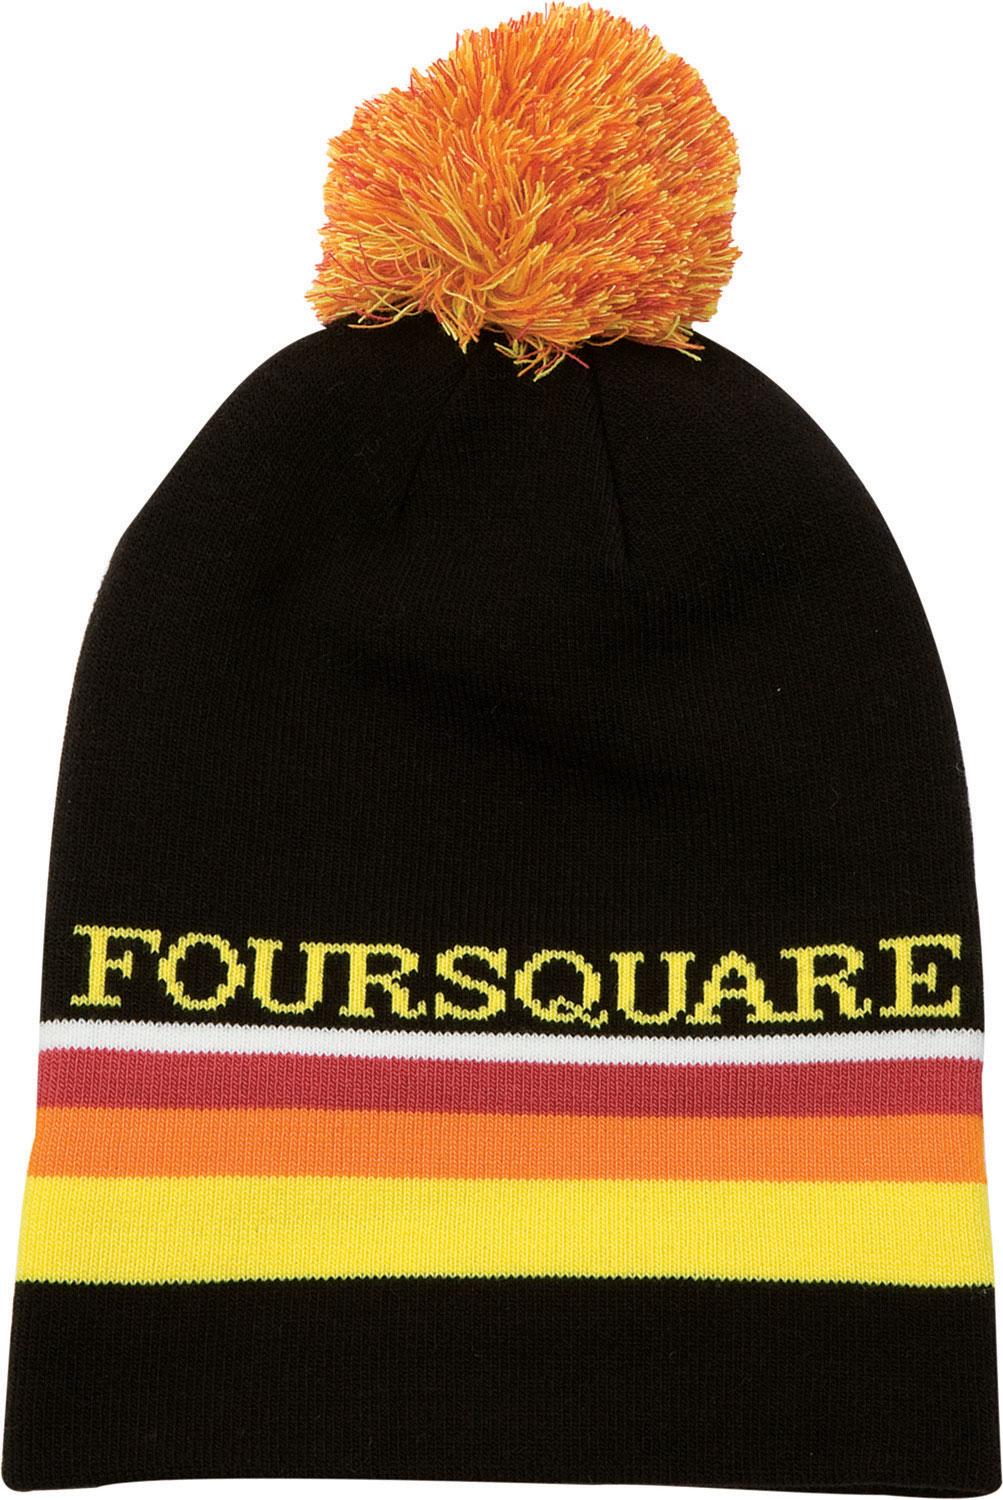 Snowboard Guys you are going to FLIP for this new Foursquare Rope Tow Beanie. Show a little bit more of your playful side with the bright color patterns and the mix color pom. The engineer strip logo rests proudly on the beanie, and is created out of a 95/5 mix of acrylic and spandex for ultimate durability and comfort. The machine knit piece means long lasting durability, and lower cost for you. Why don't you order yours today!Key Features of The Foursquare Rope Tow Beanie: Engineer strip logo Machine knit 95% acrylic 5% spandex Mix color pom - $11.95